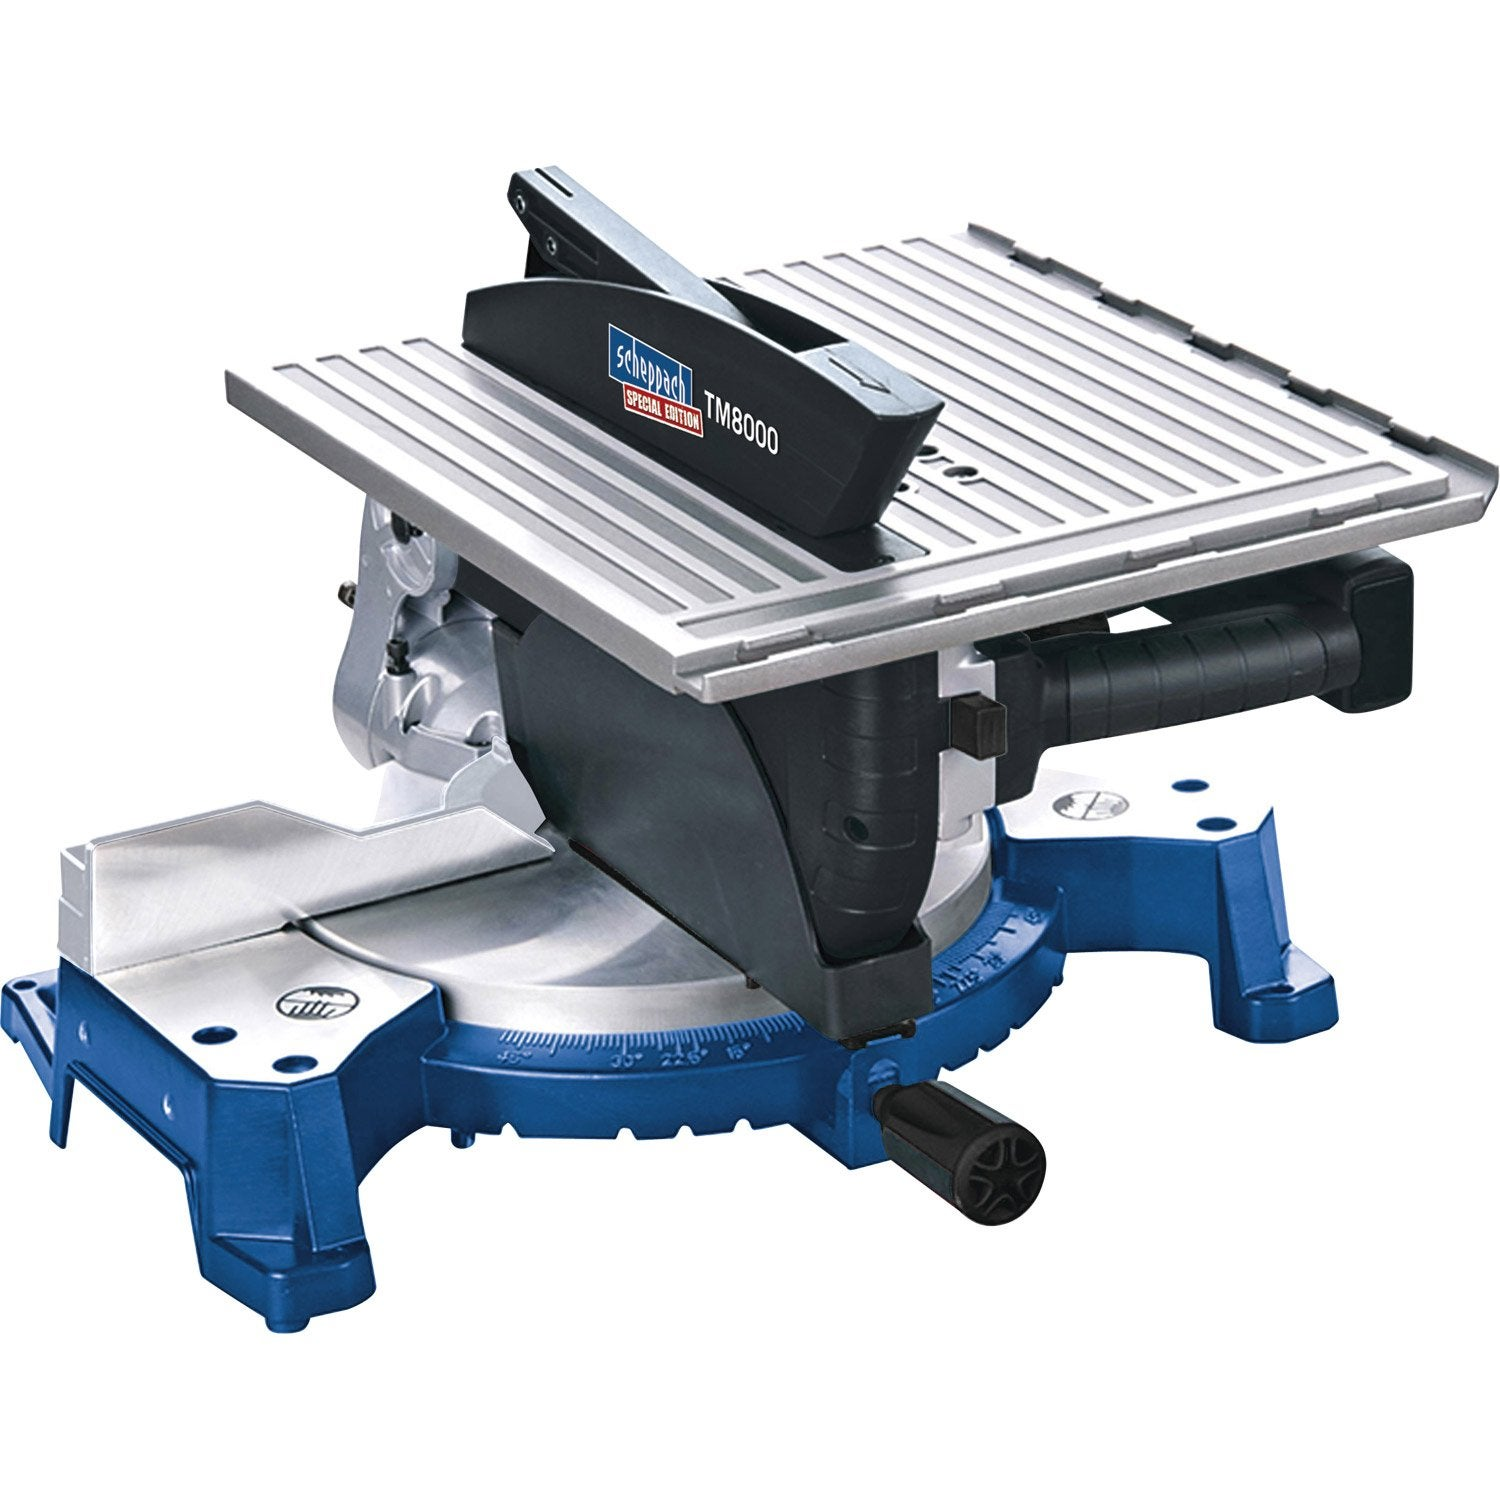 Scie onglet scheppach hm110t 250 mm 1800 w leroy merlin - Scie a onglet sur table reversible ...